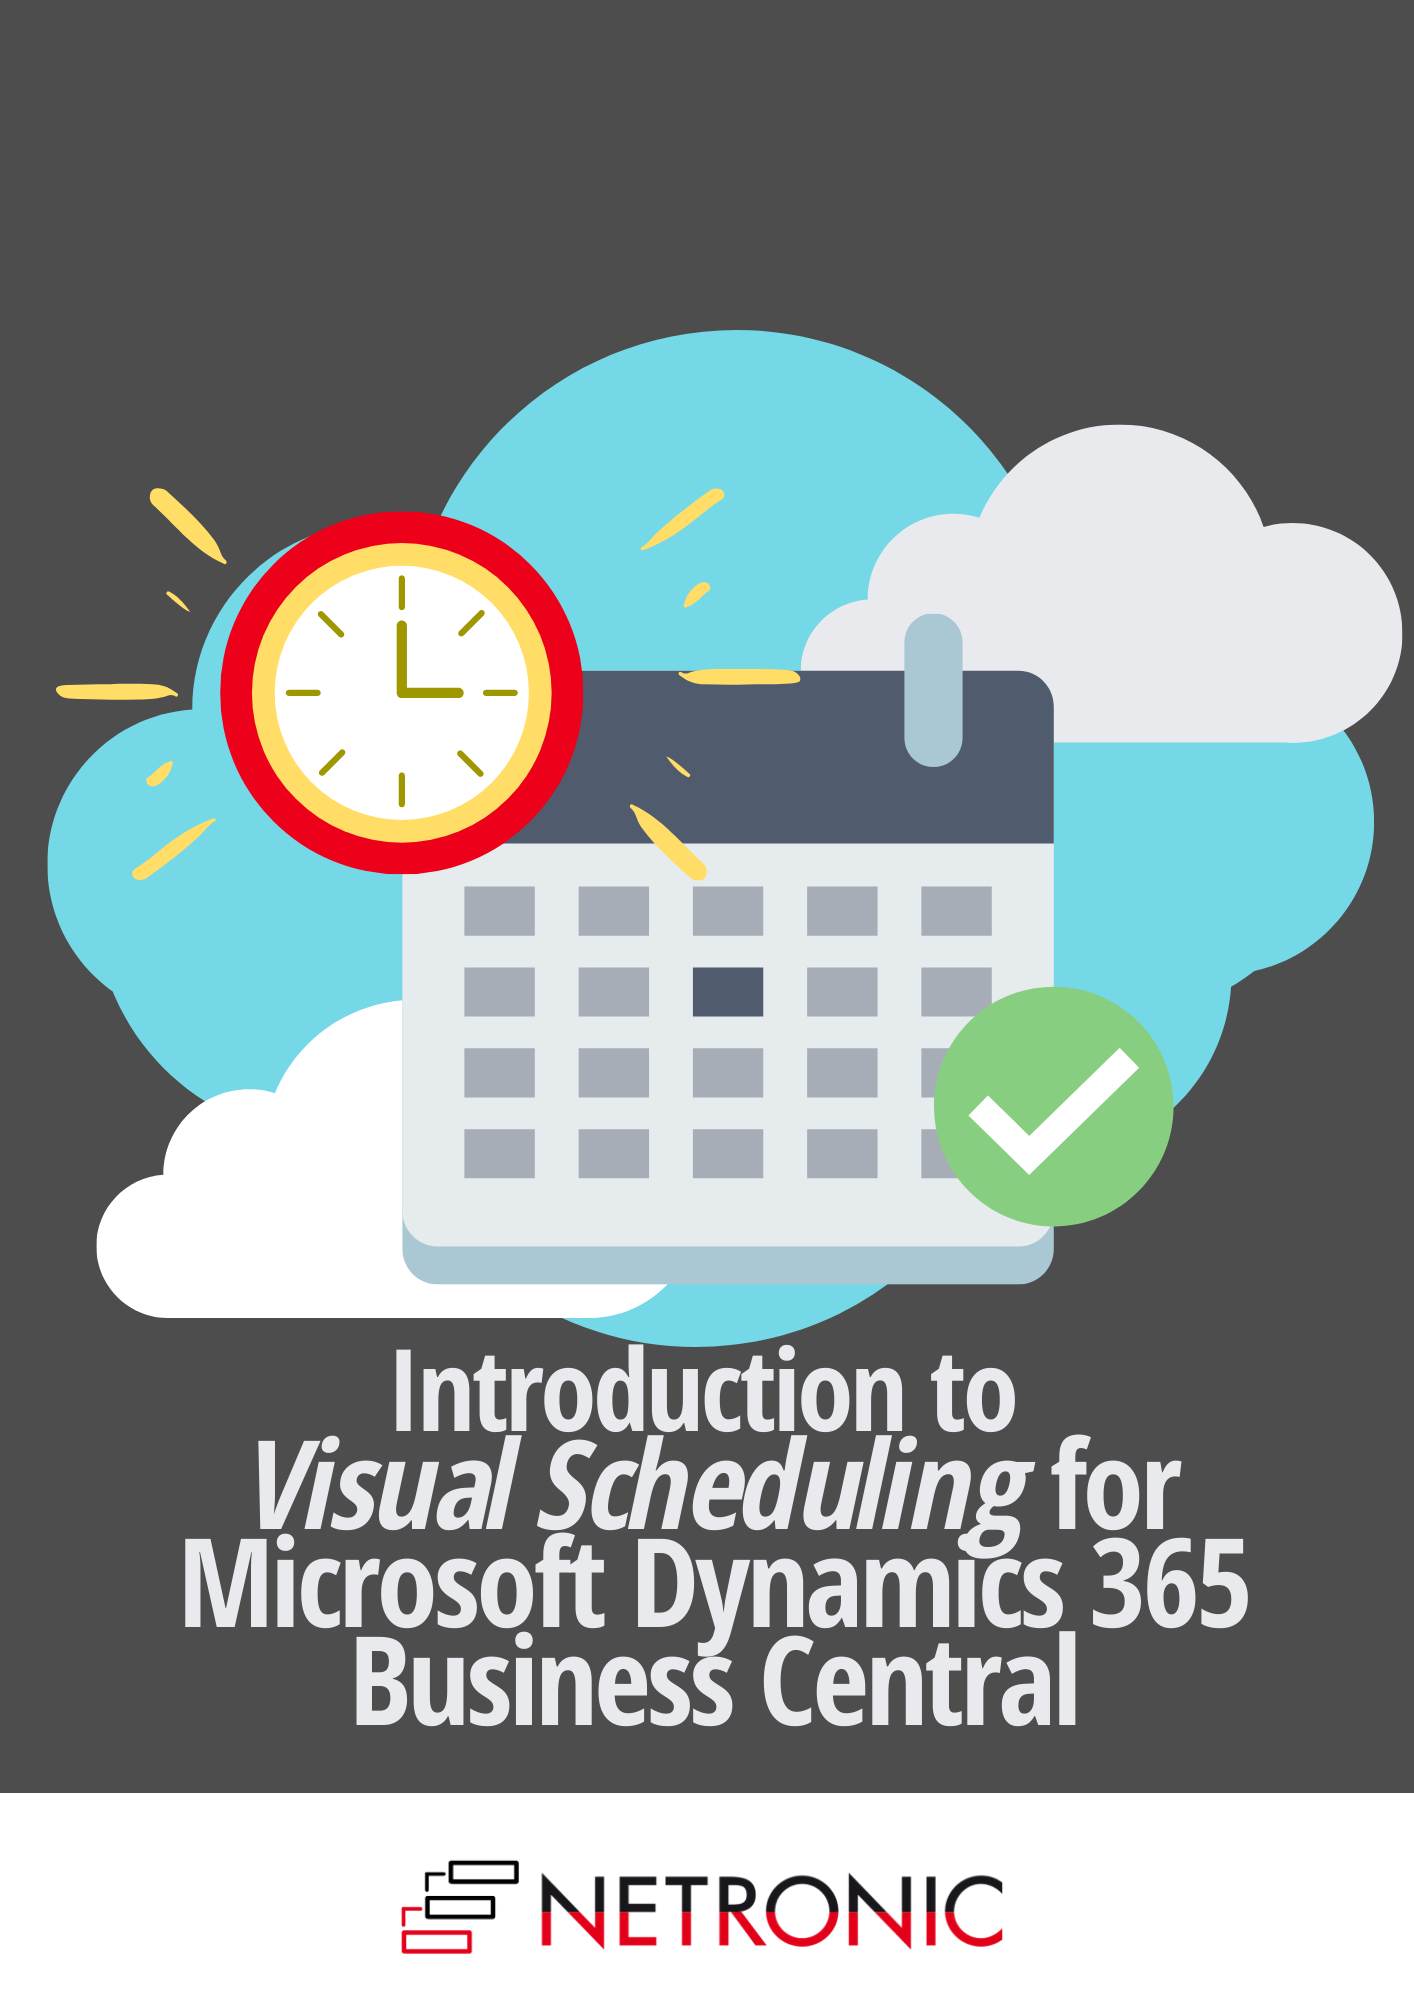 Introduction to visual scheduling 365 BC